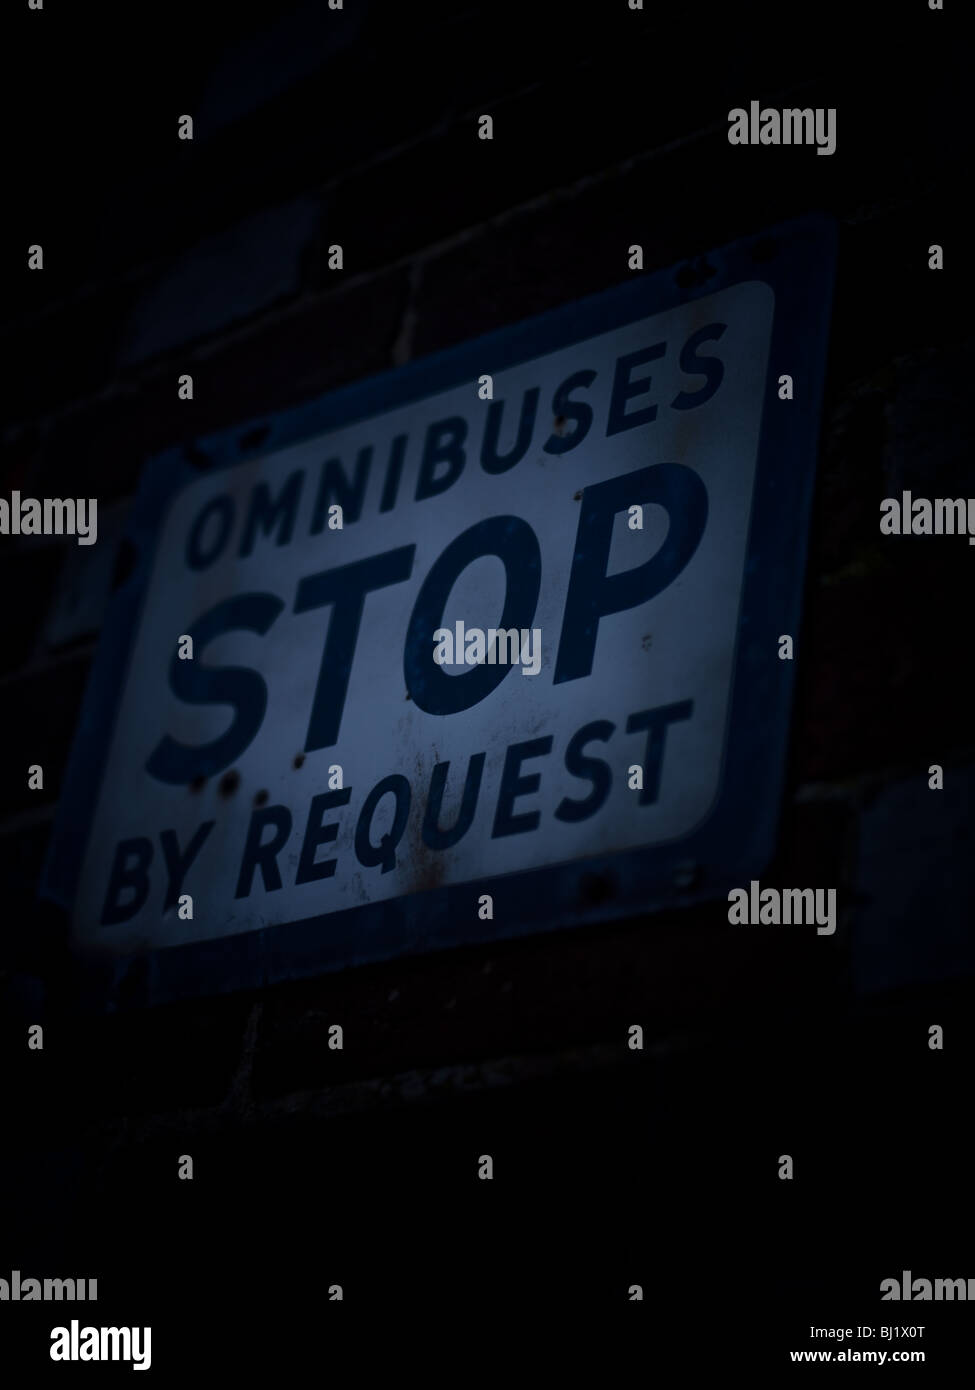 bus stop request sign - Stock Image